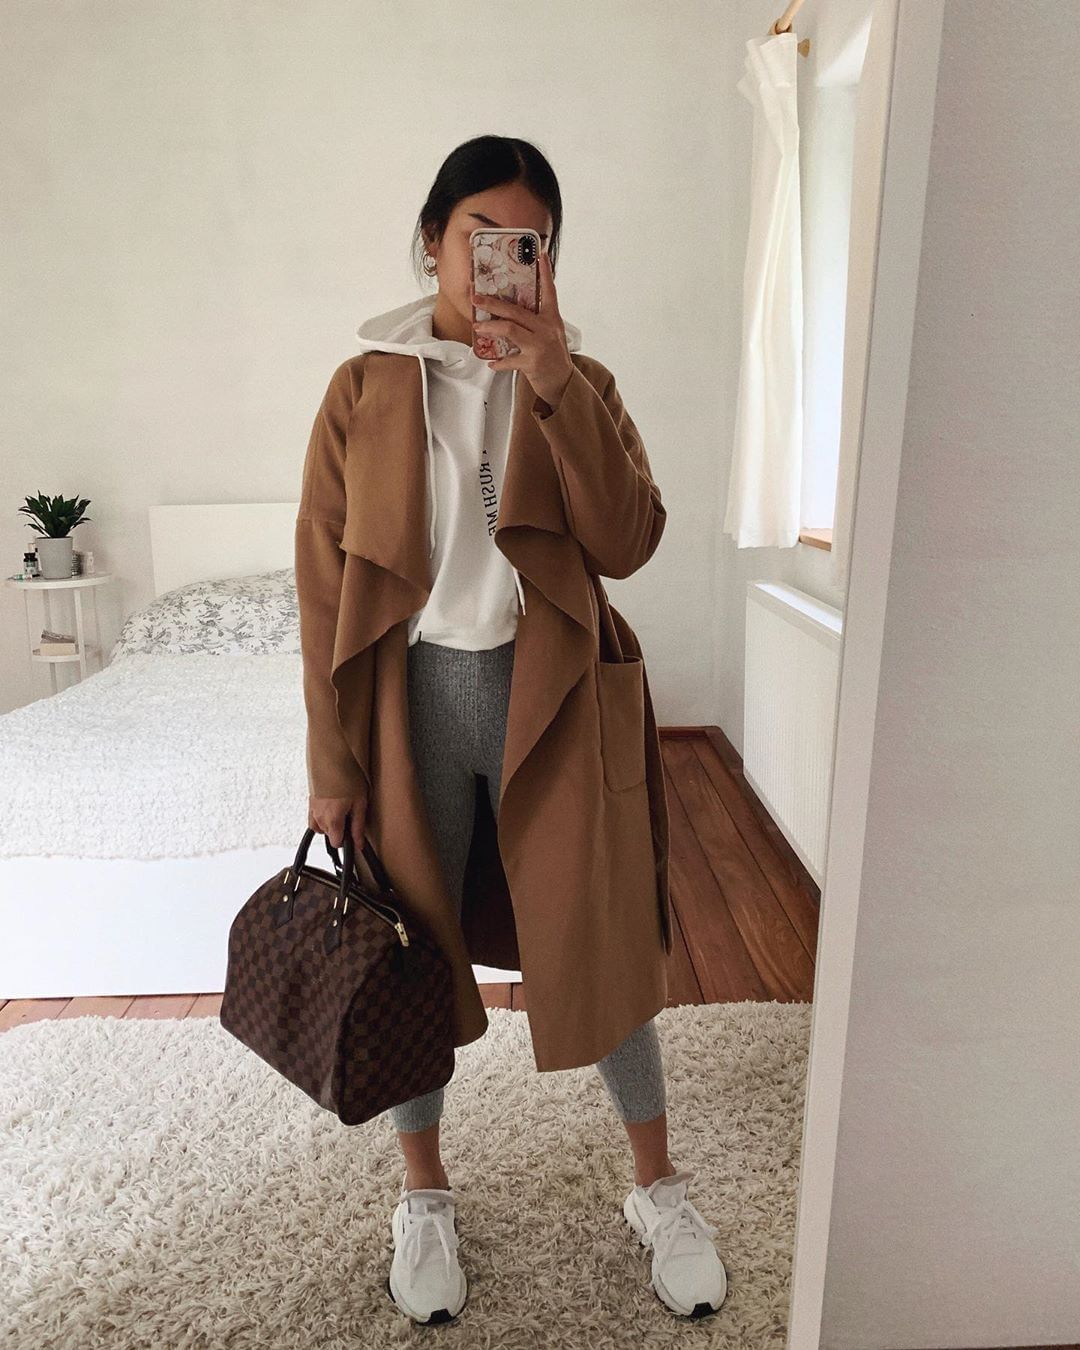 """SHEIN United States on Instagram: """"@thanyaw Keeping it cozy in Pocket Front Waterfall Coat  🔍Search:579297,832259 Shop now>http://shein.top/wciey9c #SHEIN #SHEINgals…"""" 1"""